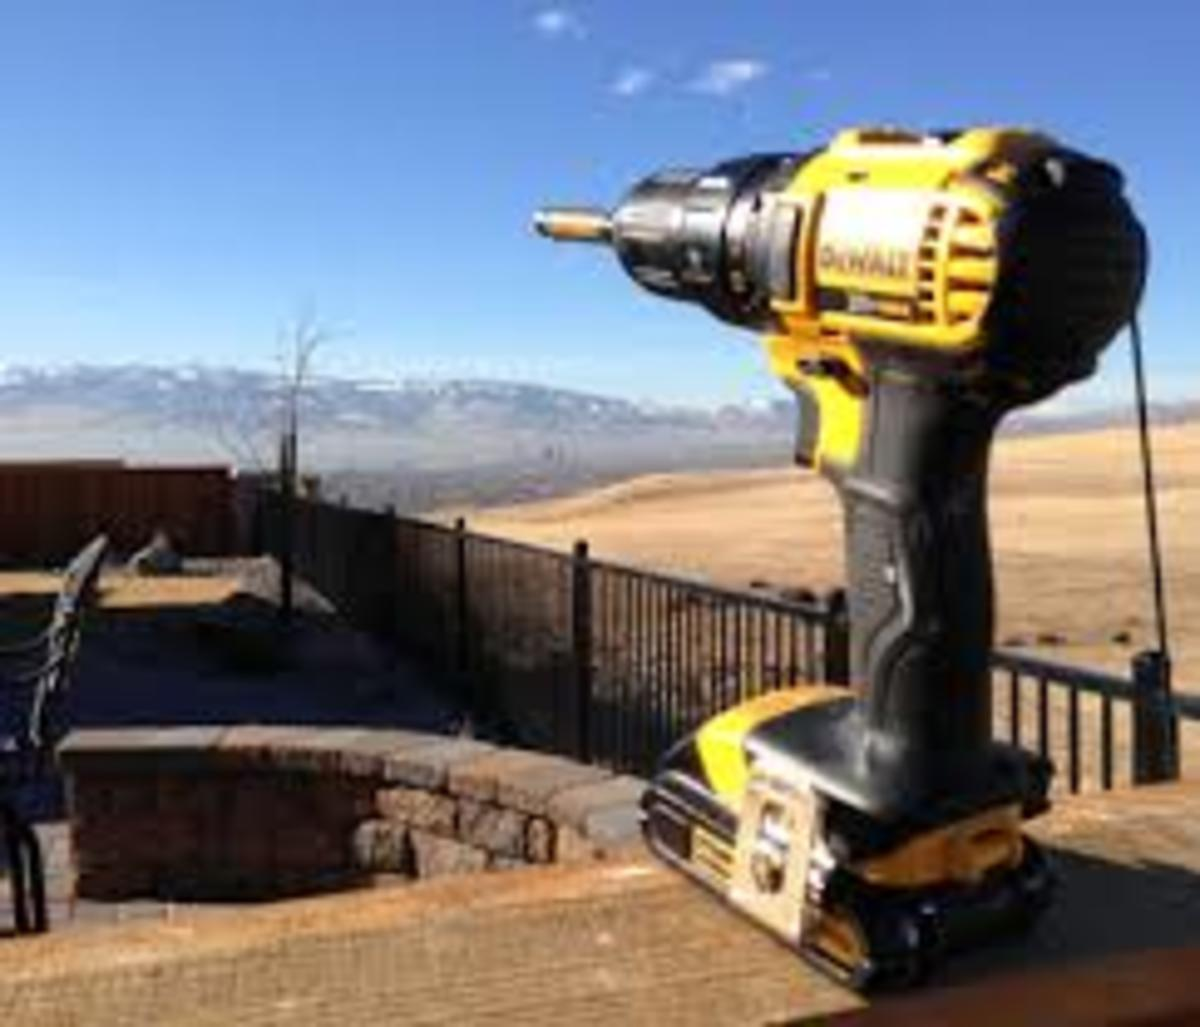 cordless-drills-one-of-the-most-necessary-tools-in-modern-skilled-trades